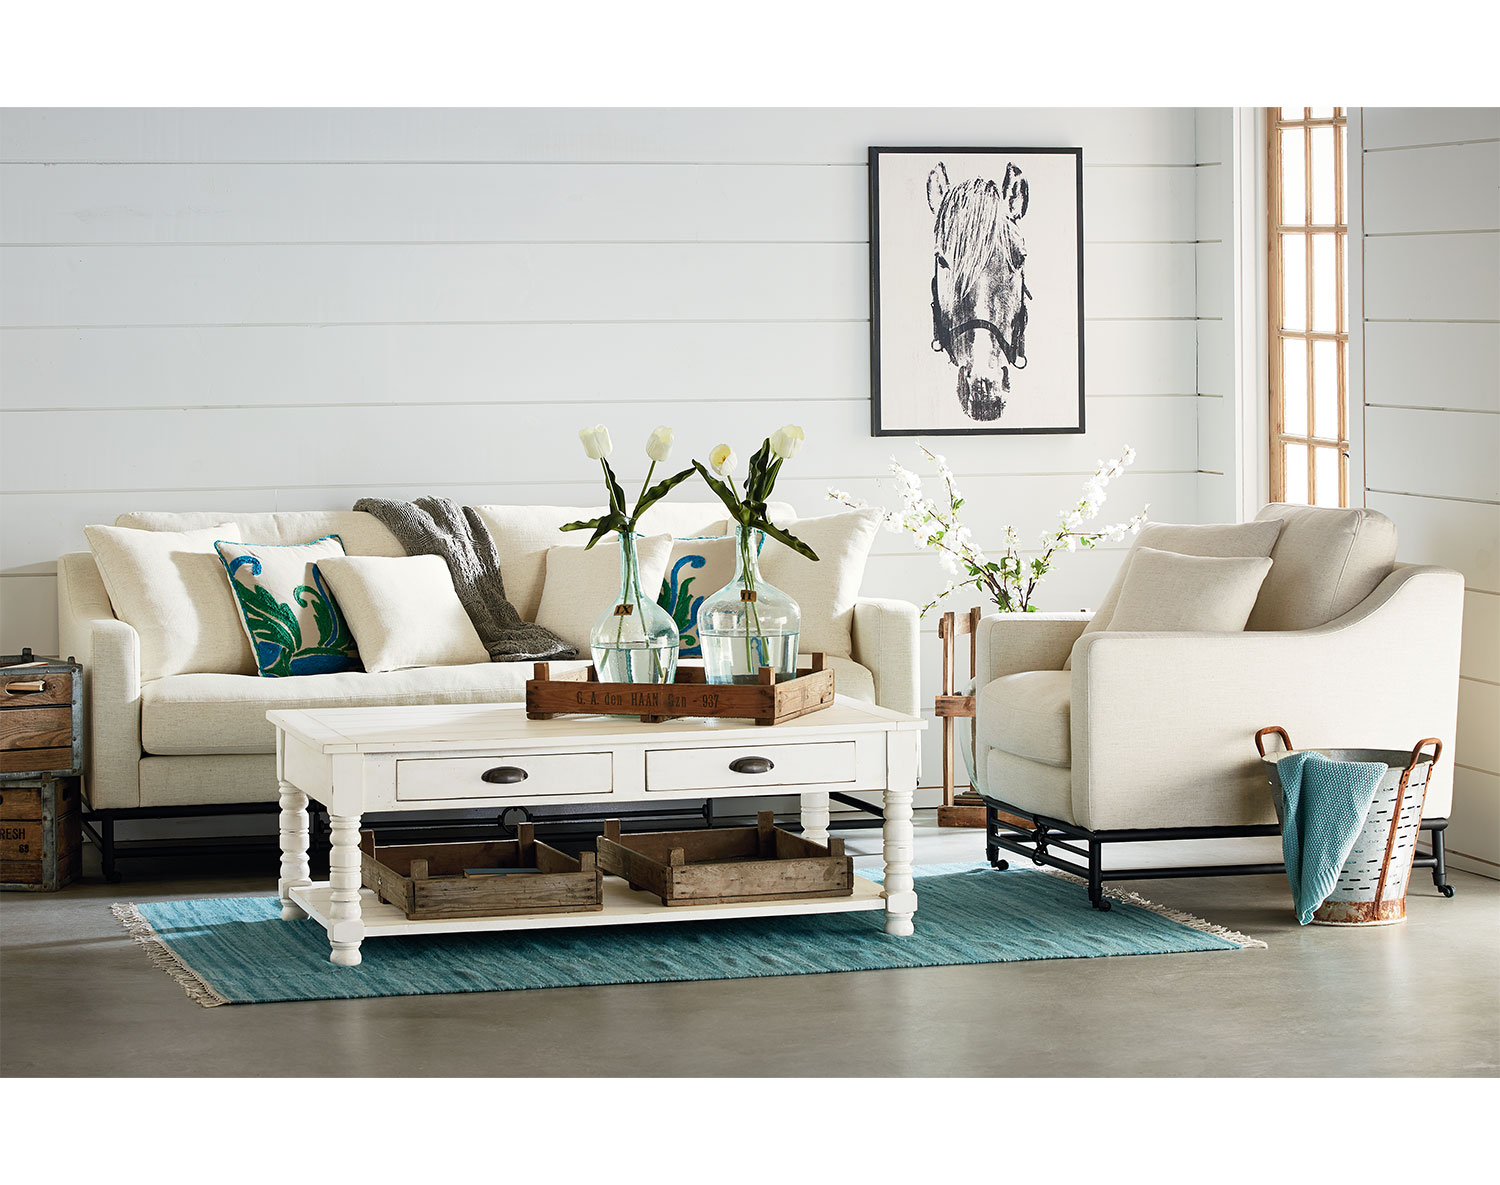 Shop All Magnolia Home Furniture American Signature Furniture